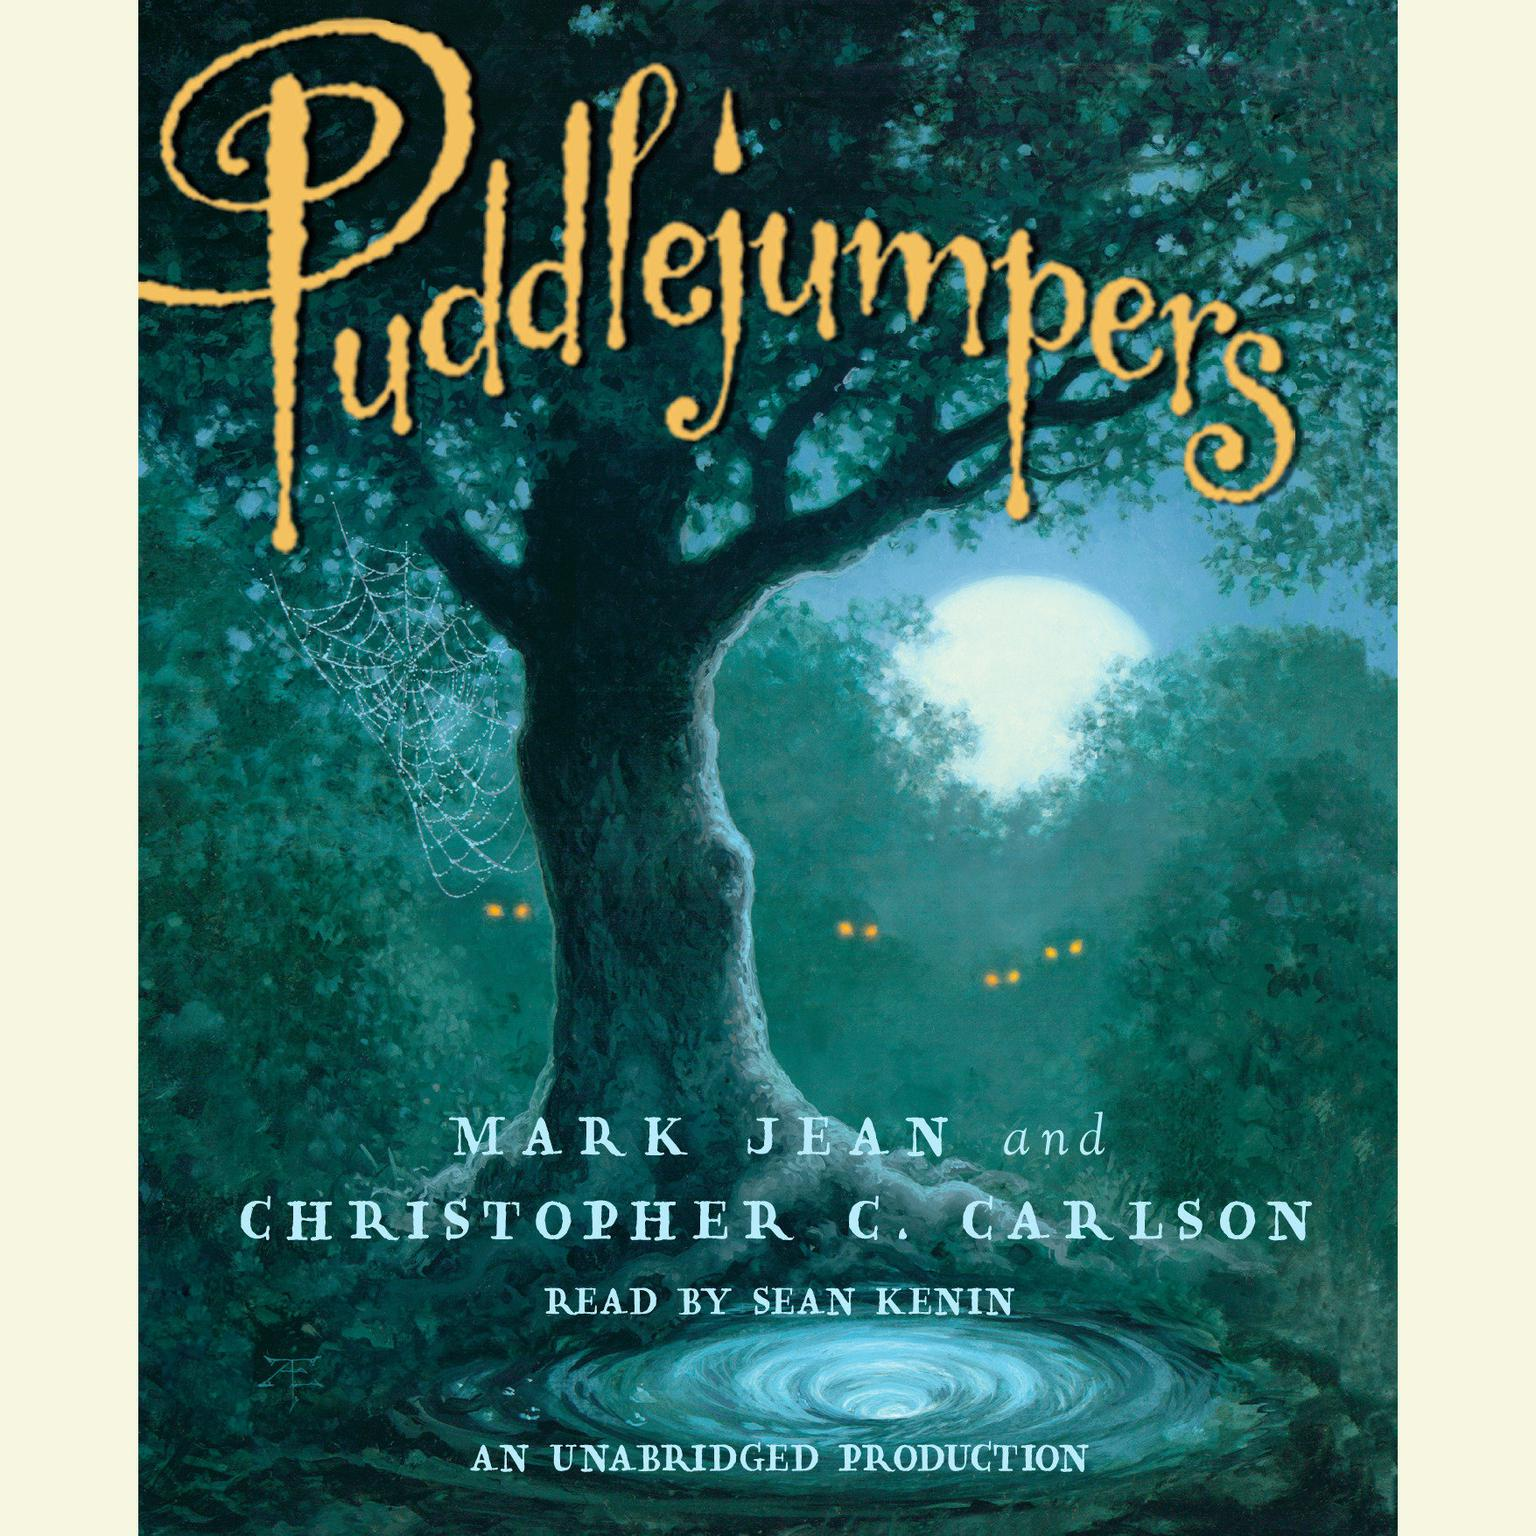 Printable Puddlejumpers Audiobook Cover Art